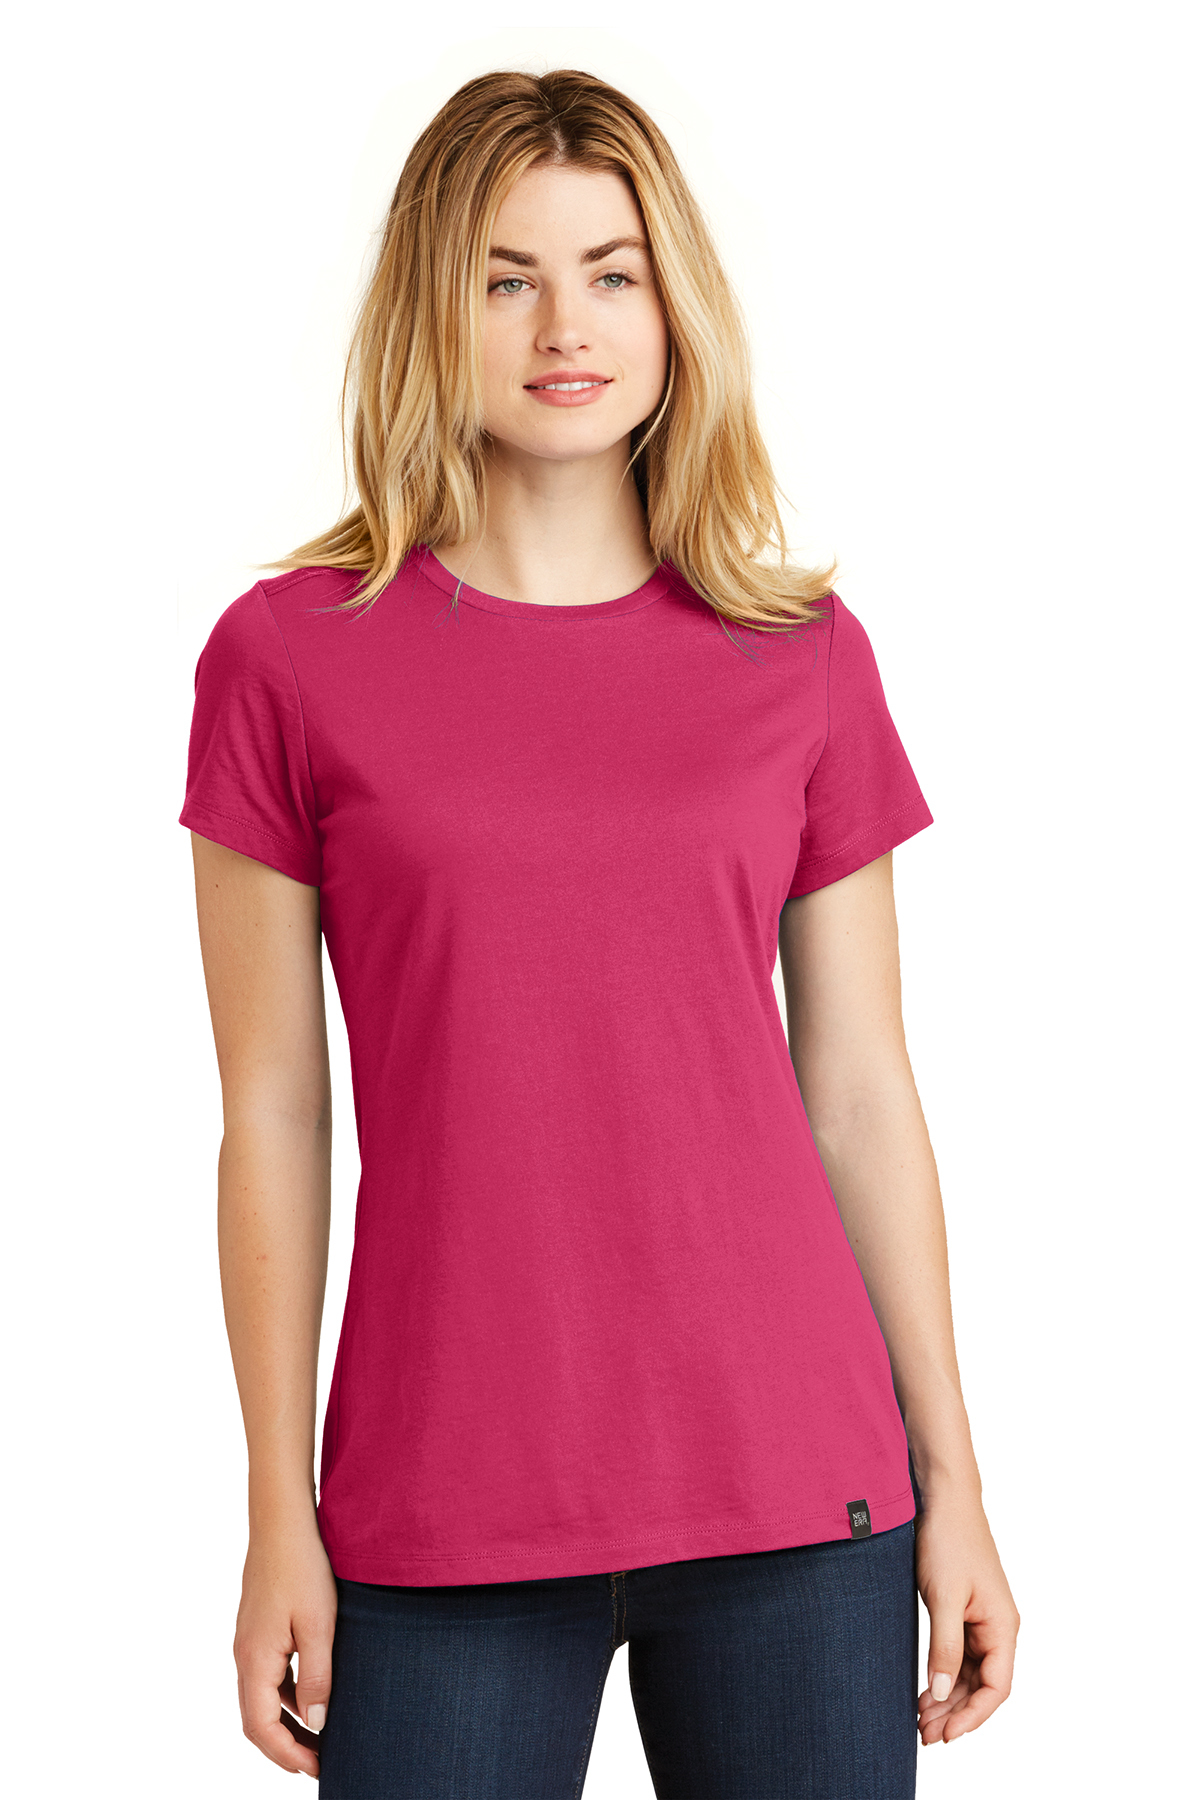 click to view Deep Pink